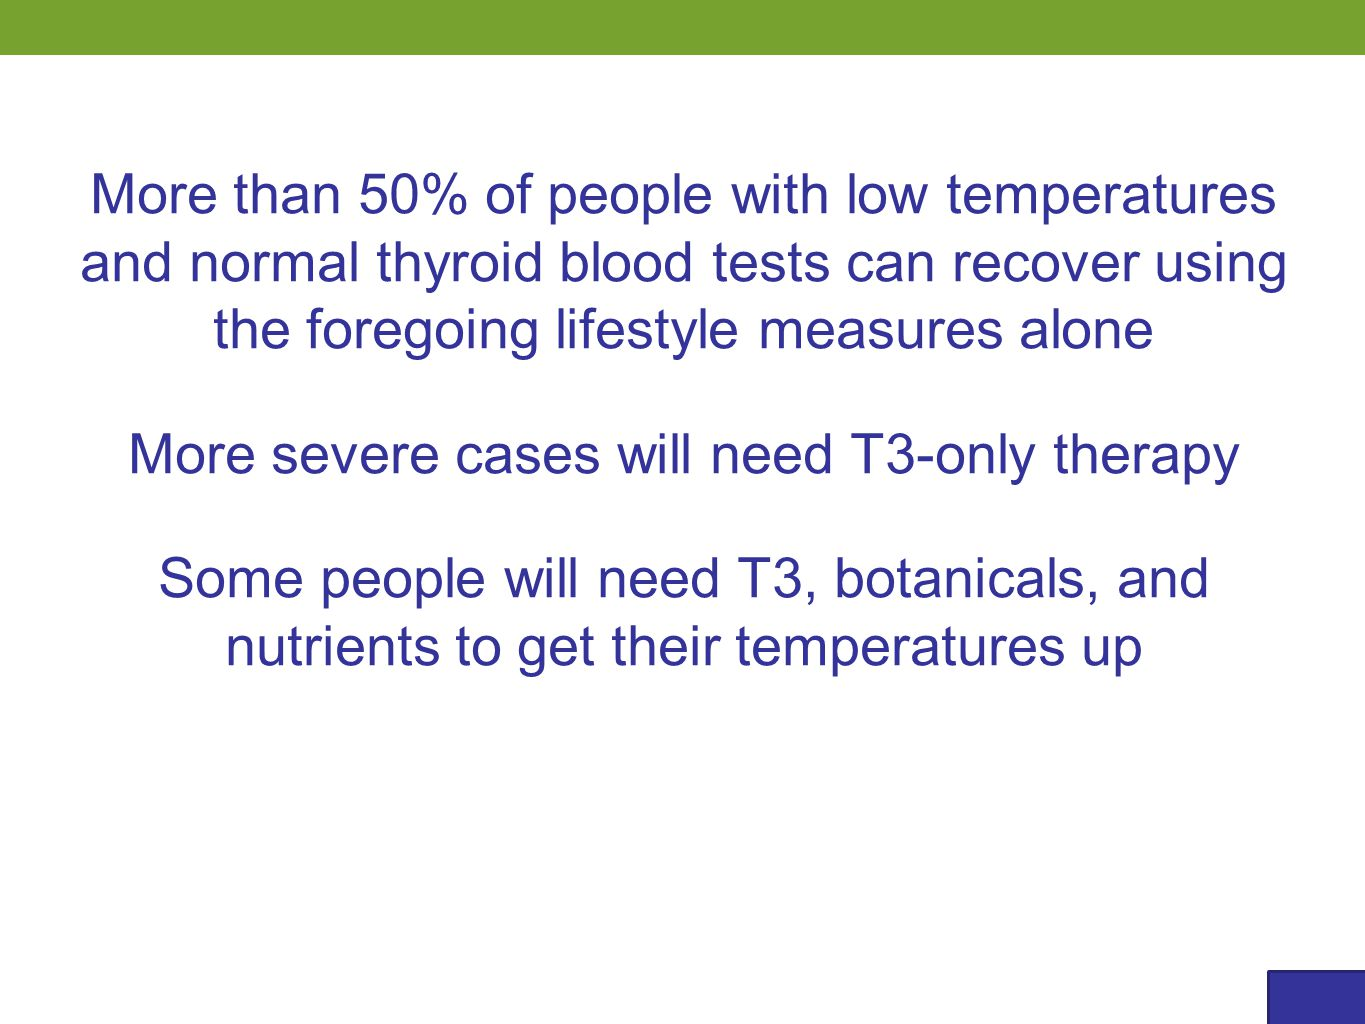 More than 50% of people with low temperatures and normal thyroid blood tests can recover using the foregoing lifestyle measures alone More severe case